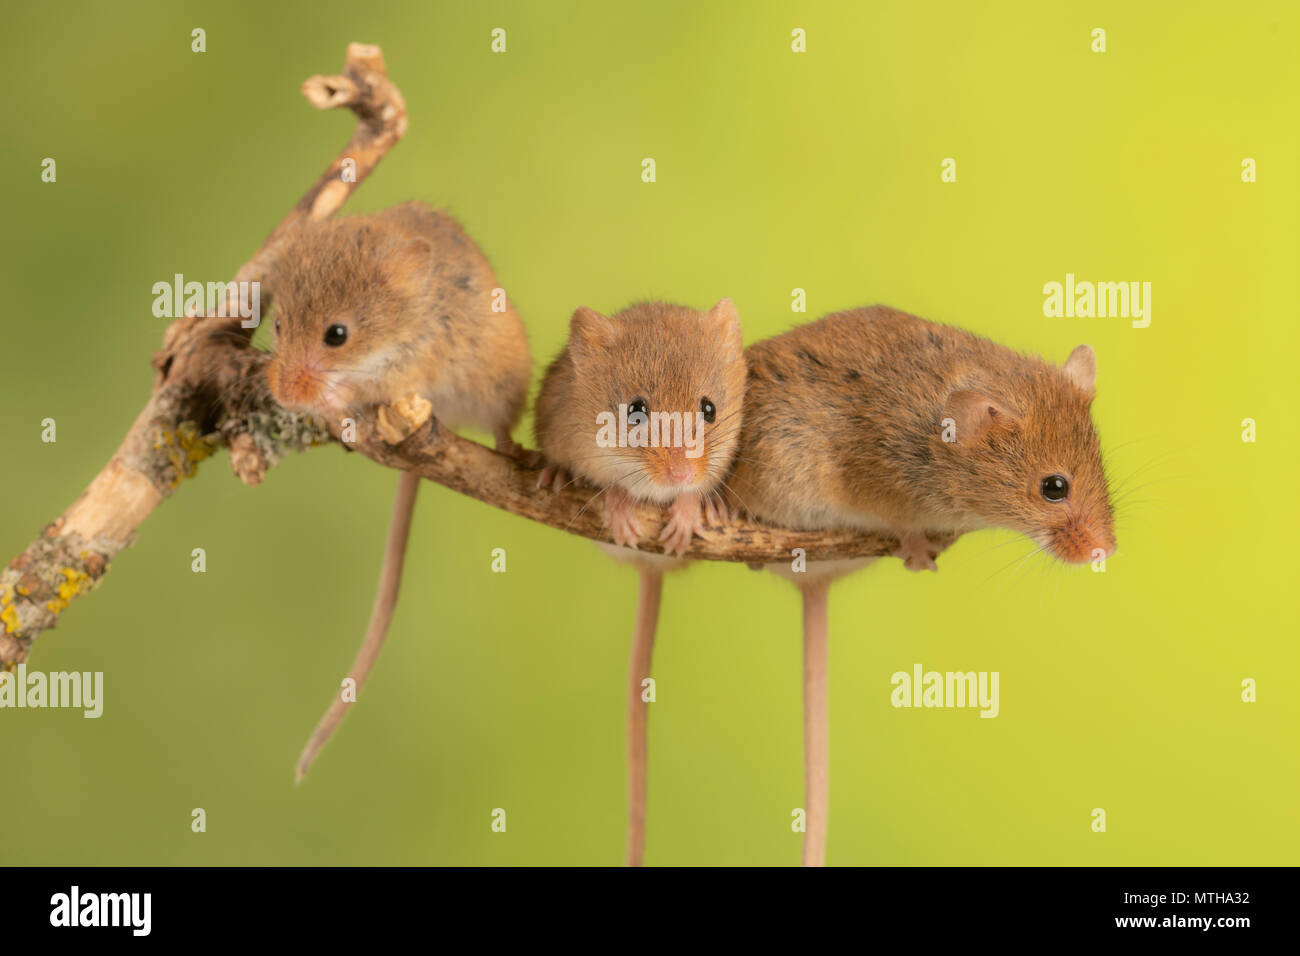 Trio of cure harvest mice sitting on a branch - Stock Image